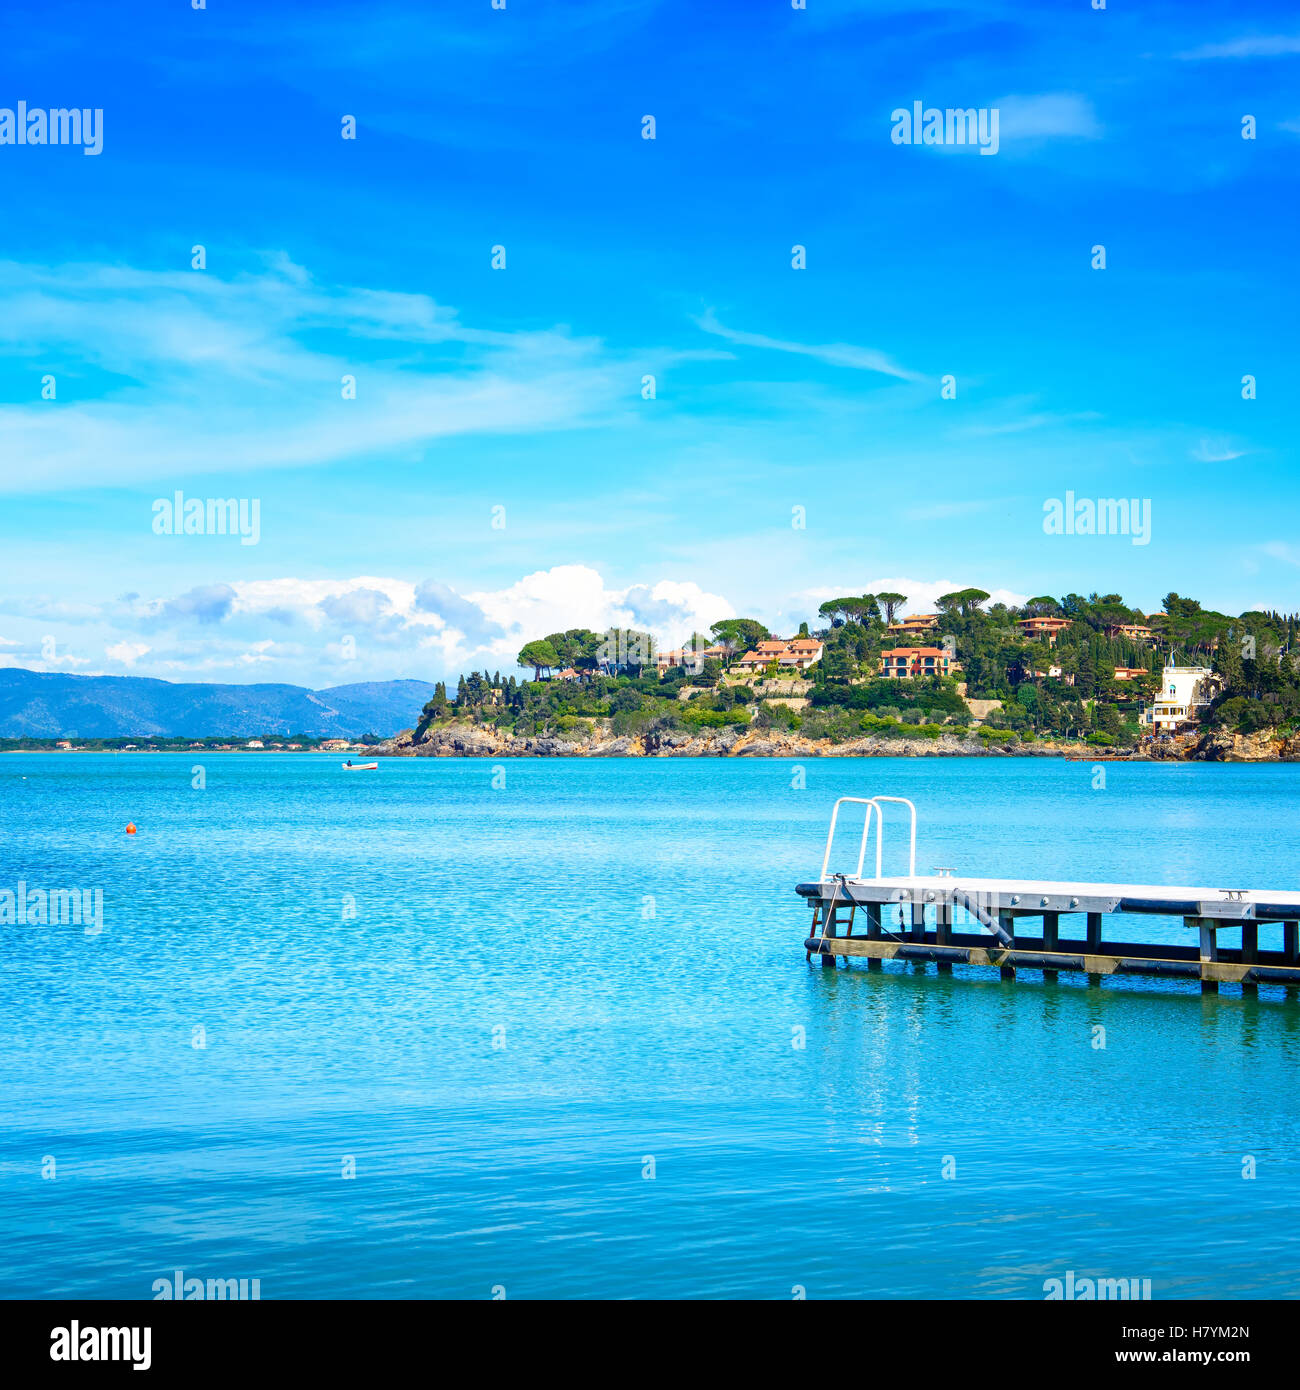 Wooden pier or jetty on a blue sea and clear sky. Bay beach in Monte Argentario, Porto Santo Stefano, Tuscany, Italy - Stock Image